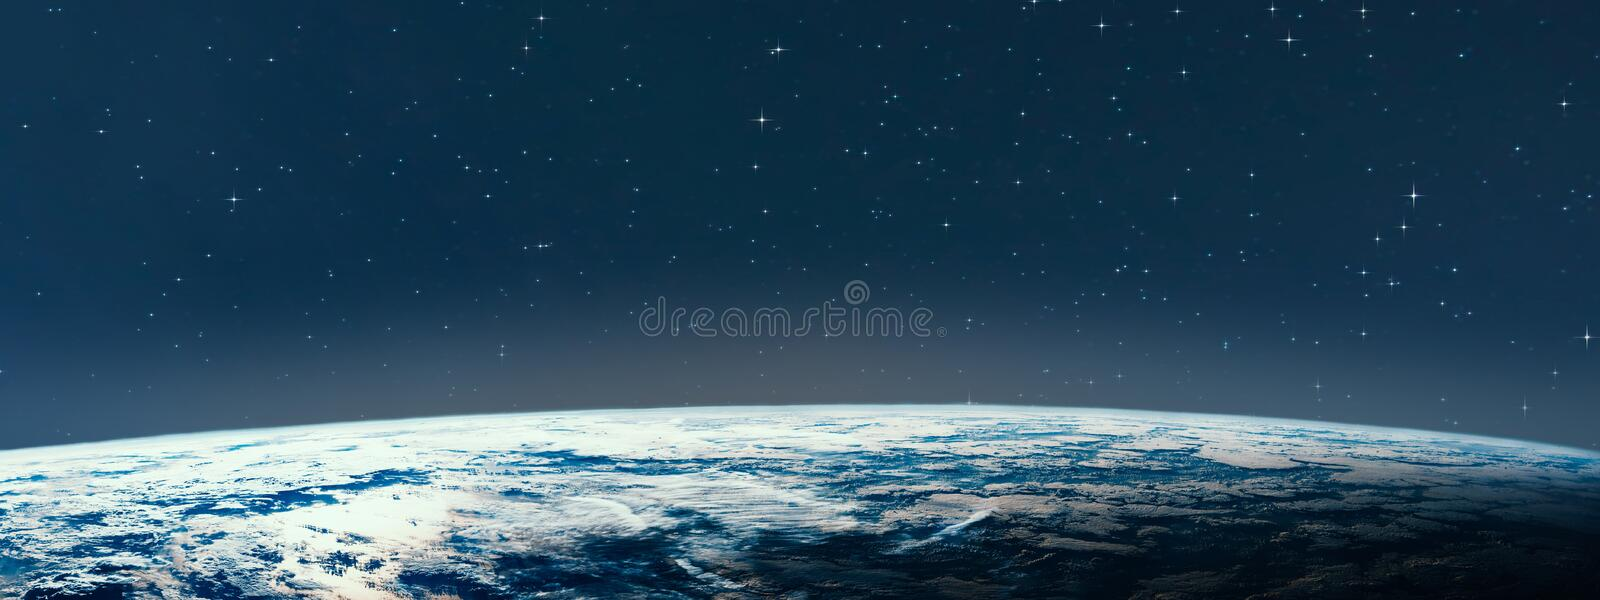 Planet earth from the space at night. Some elements of this image are furnished by NASA